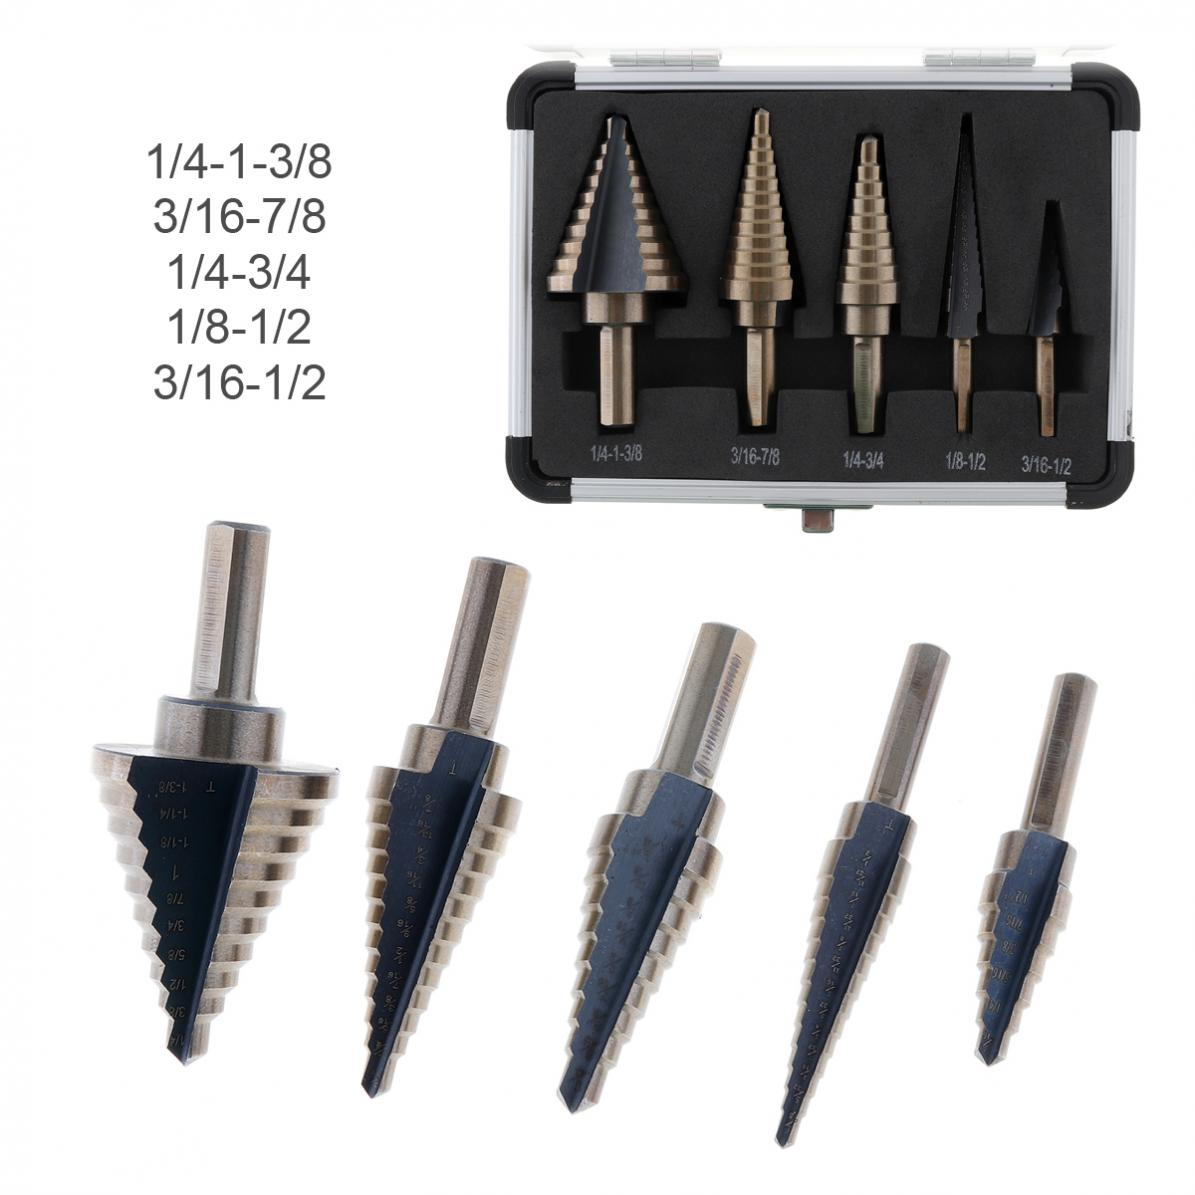 5pcs HSS Steel Step Drill Bit Set Cone Spiral Grooved Drill Bits Multiple Hole of 1/4-1-3/8 3/16-7/8 1/4-3/4 1/8-1/2 3/16-1/2 полотенца philippus полотенце laura 50х90 см 6 шт